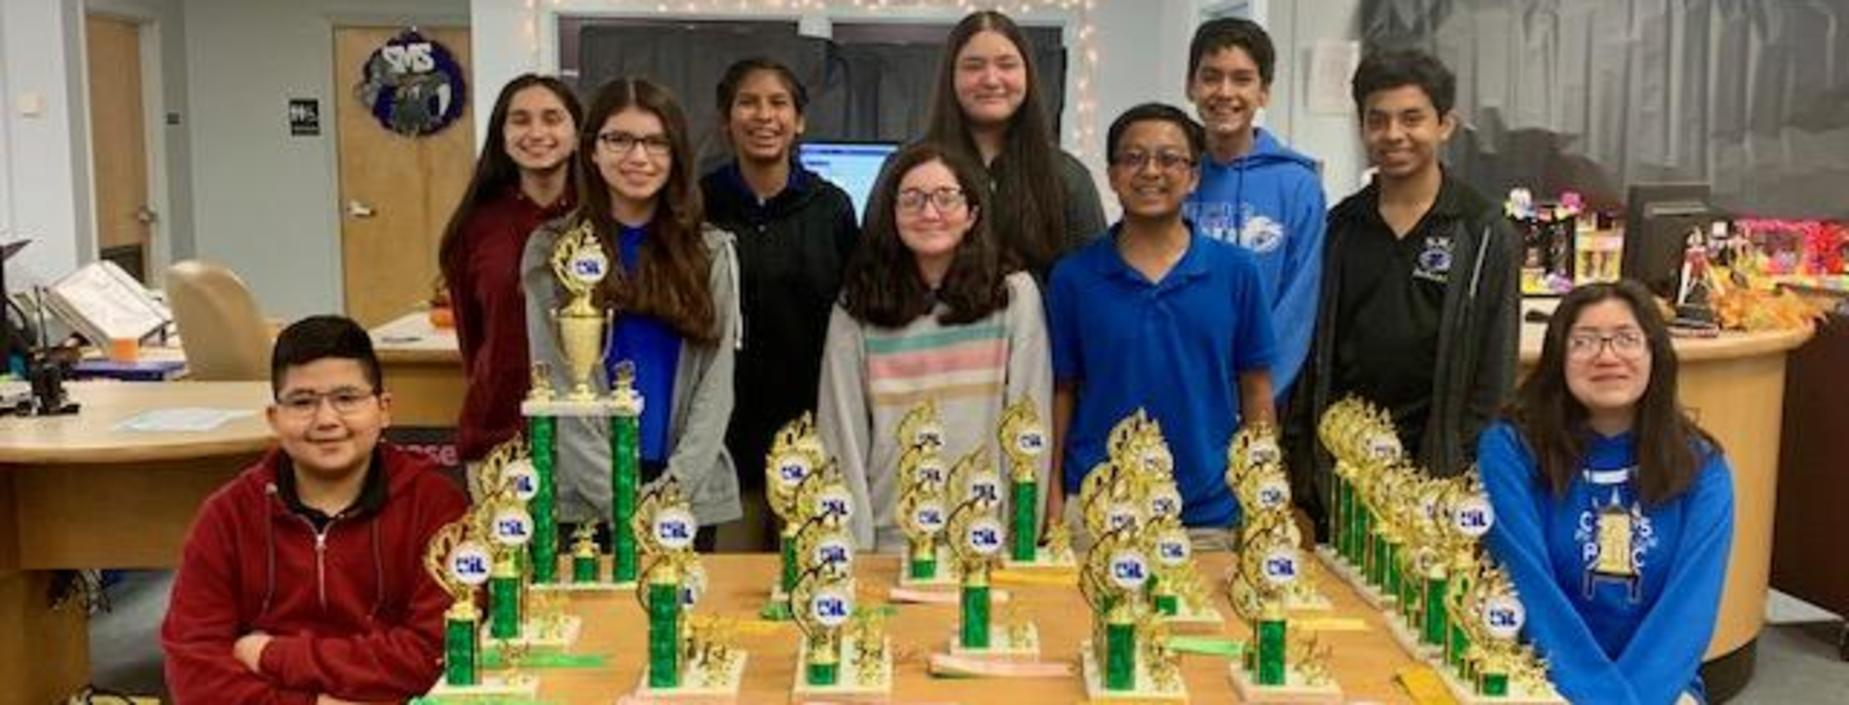 8th Grade UIL wins 1st Place